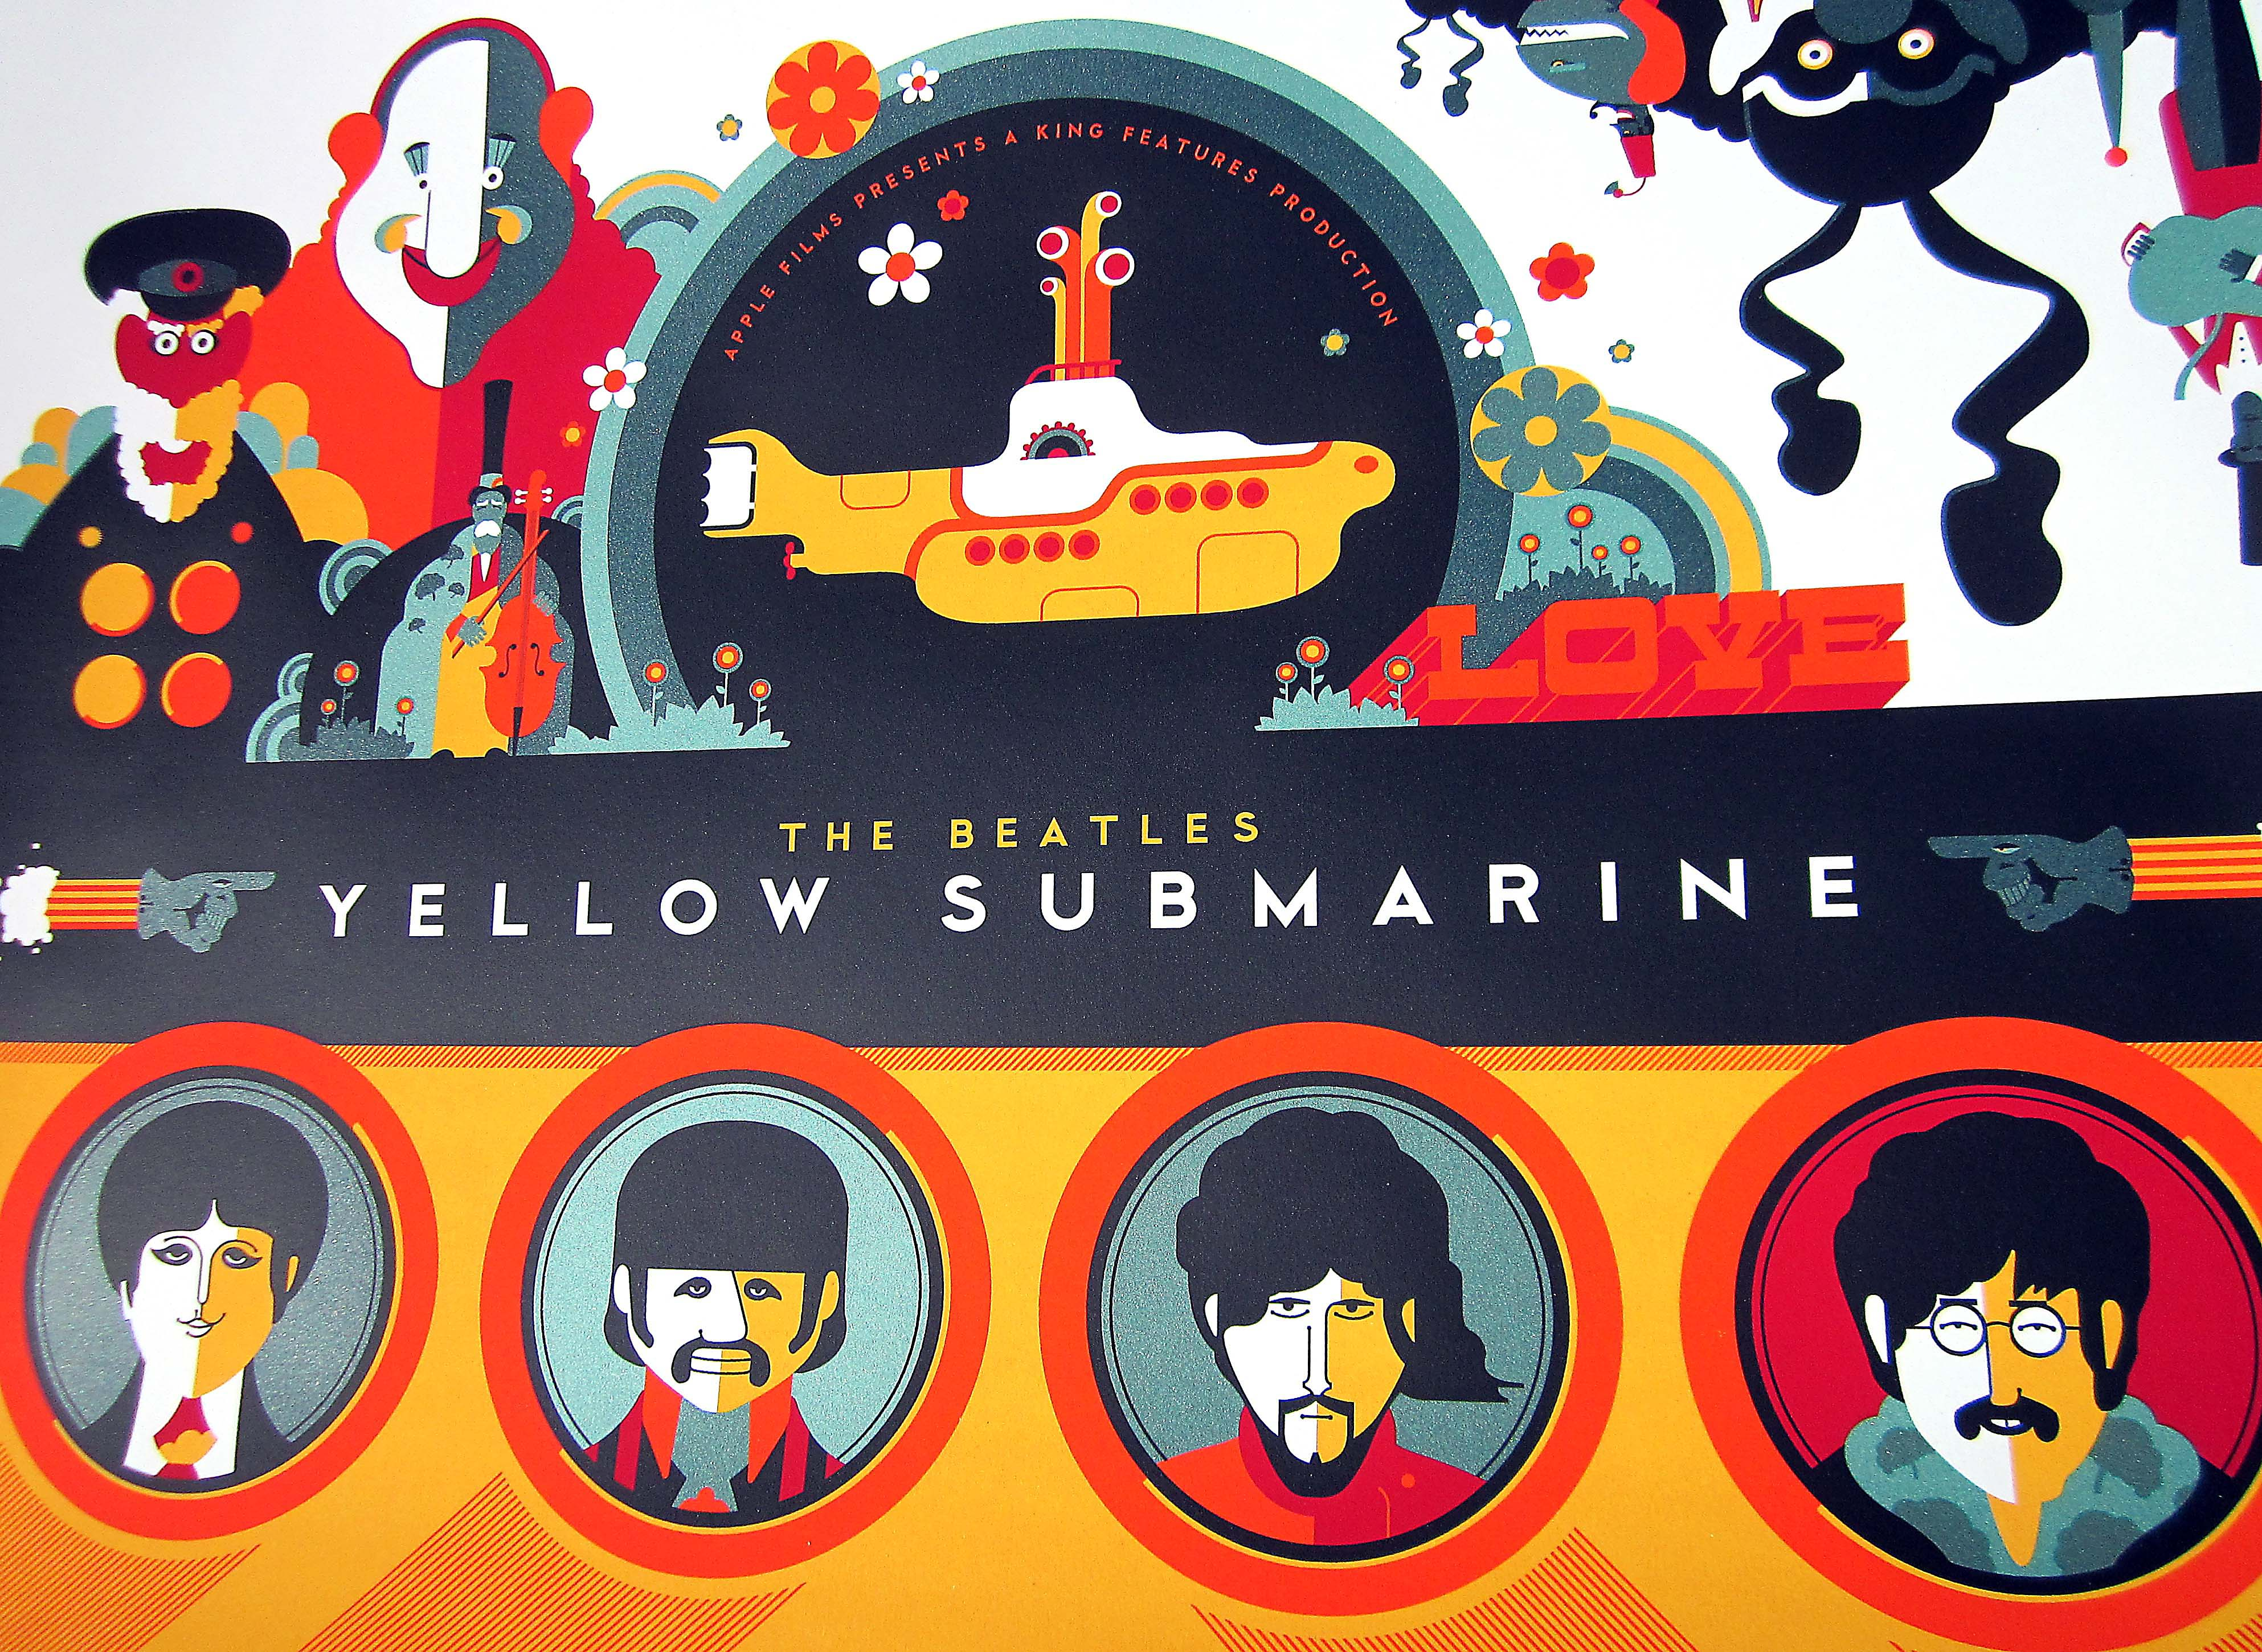 ... Yellow Sub Editions Available this Tuesday! May 29th at 9:30AM PST